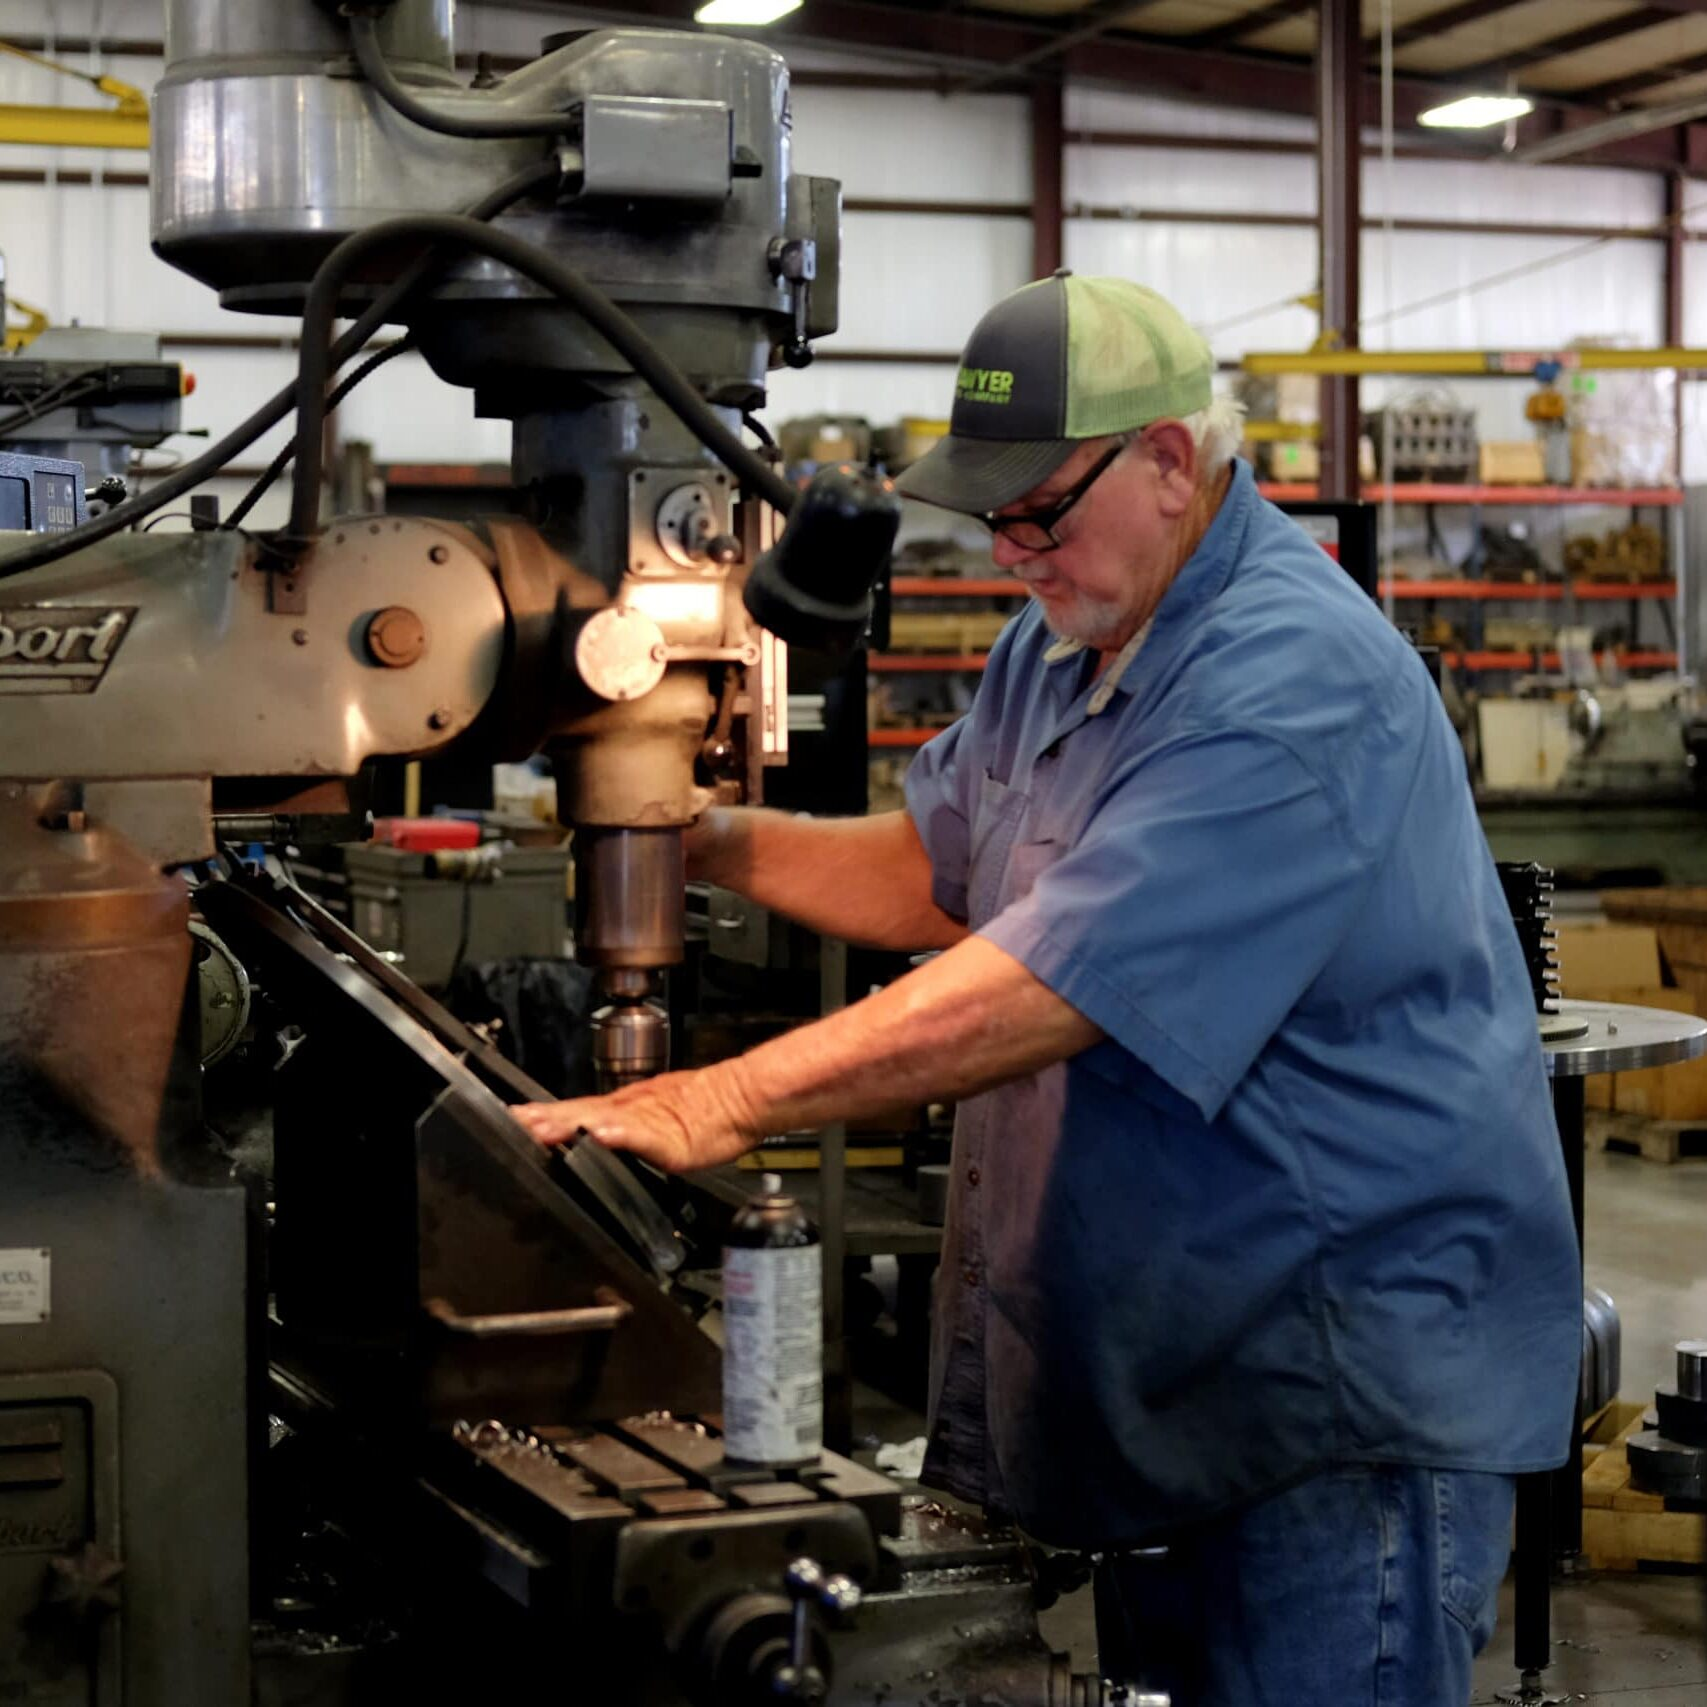 Our equipment is machined, welded, and assembled in our shop.